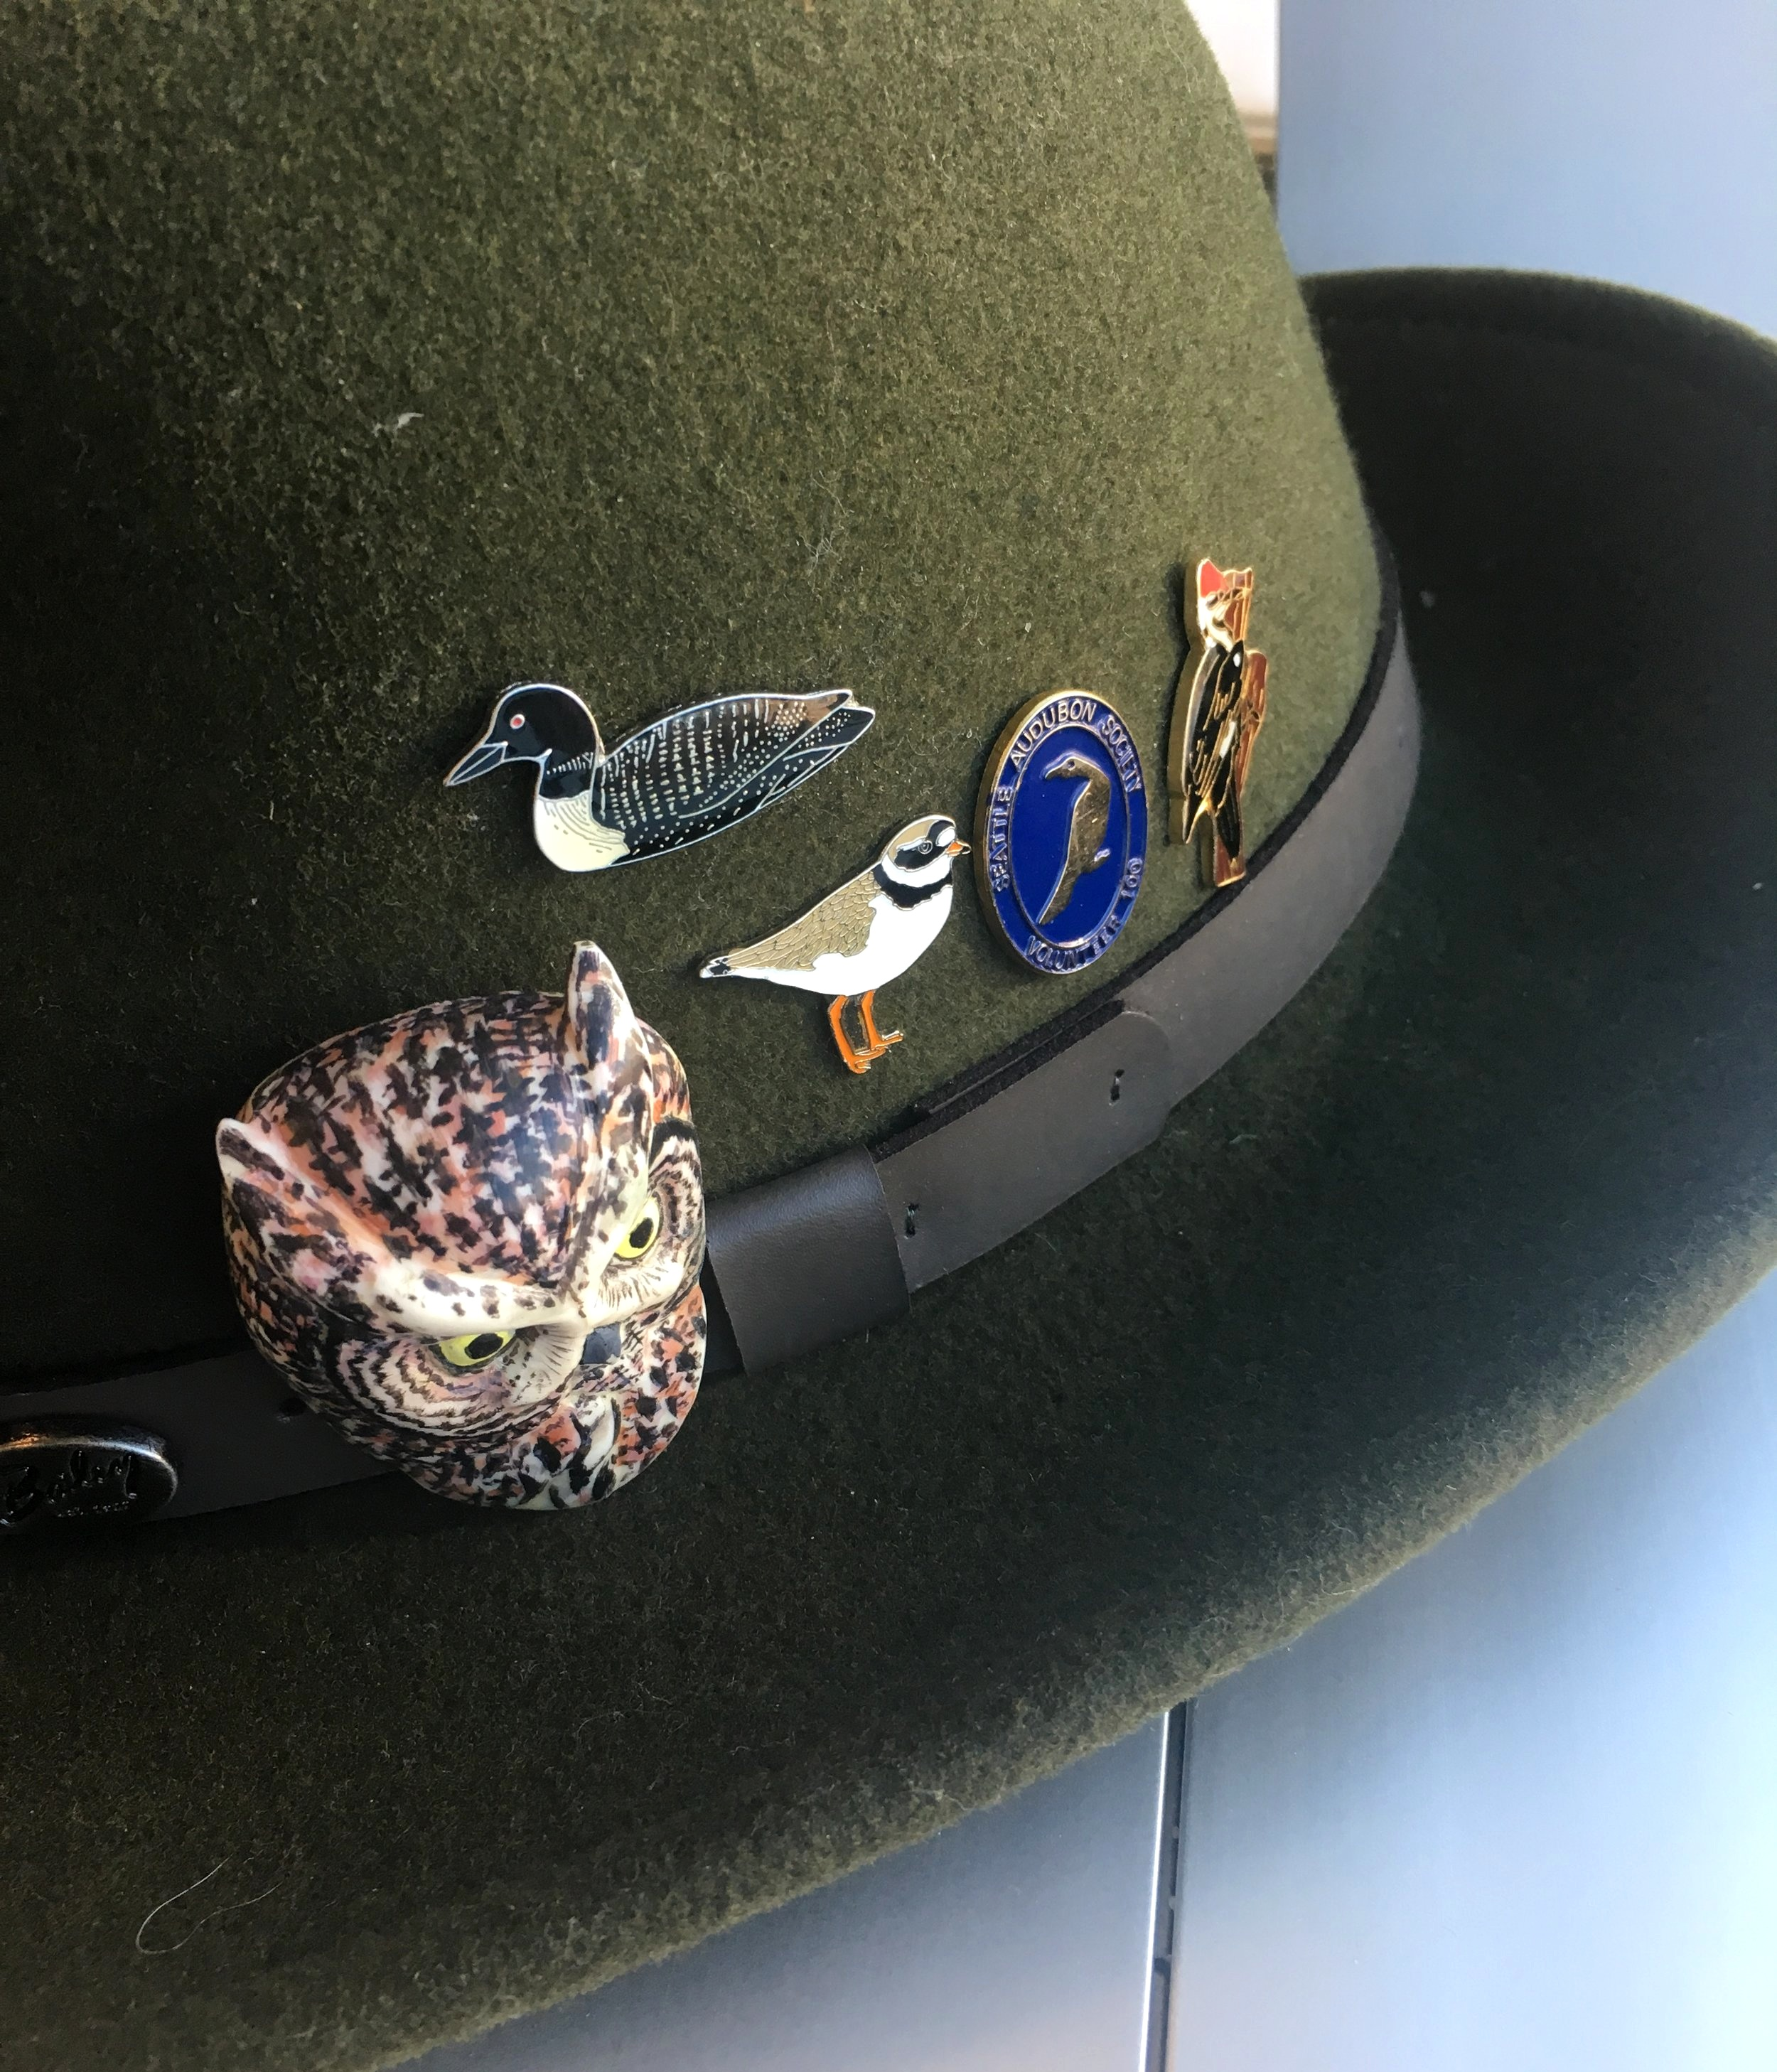 My hat pins: Western Screech Owl carved by my dad,  Tony Angell . The Common Ringed Plover is from the  Minsmere Nature Preserve  gift shop, in Suffolk, UK, run by the Royal Society for the Preservation of Birds. The Seattle Audubon pin is for my completion of 100 hours of volunteer service, now far surpassed (I'm closer to 500, but nowhere near Izzy's 1000 hours!).